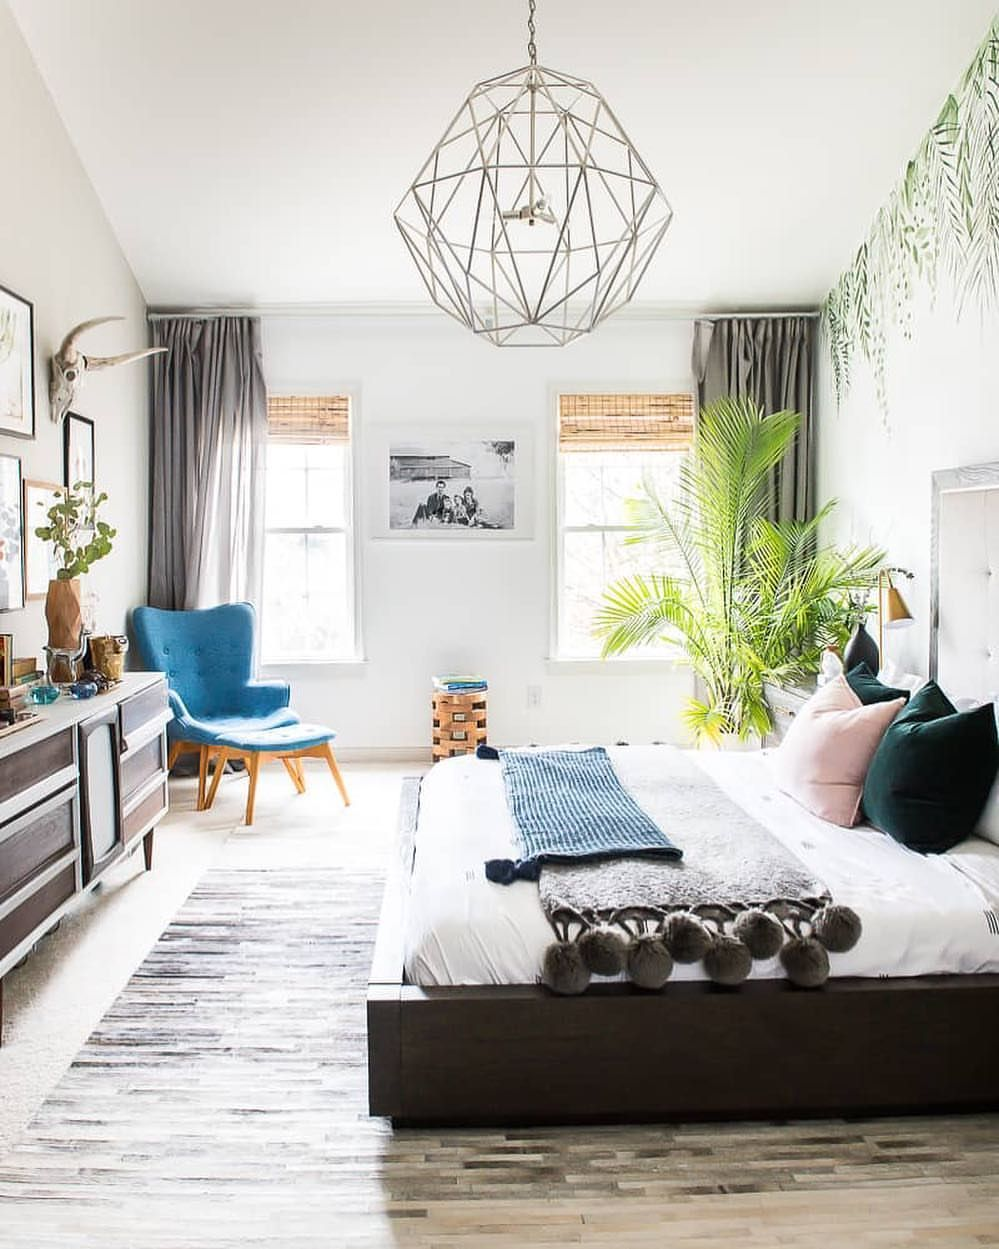 It S Not My Currenthomeview But Would Sure Love This View Right Now Haha My Current Situation Simple Bedroom Simple Bedroom Decor Stylish Bedroom Design Simple bedroom decoration view